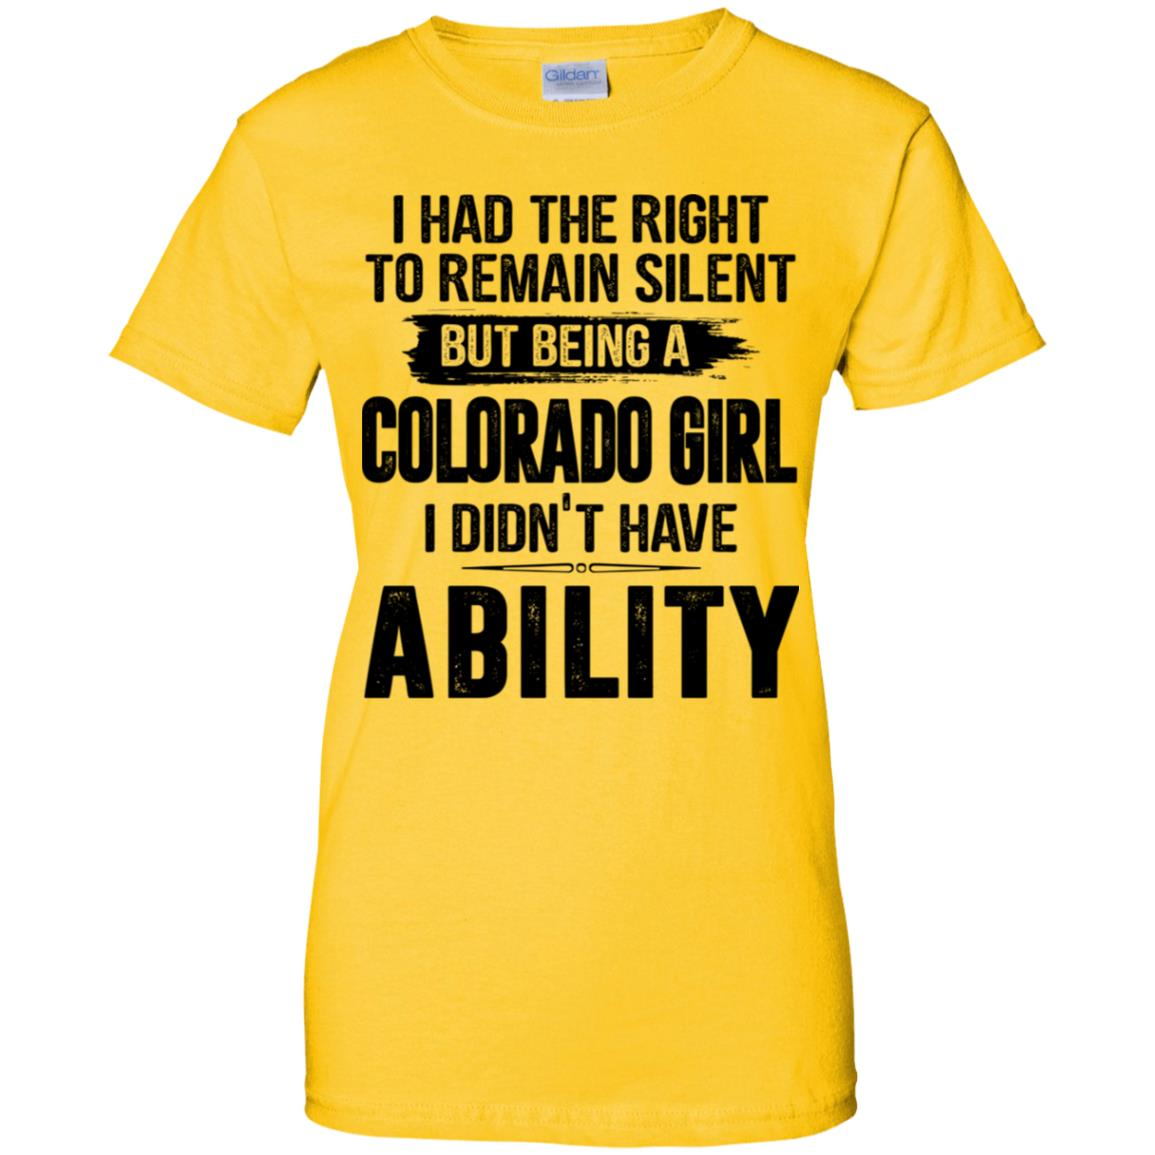 Being A Colorado Girl I Didn't Have Ability T-Shirt